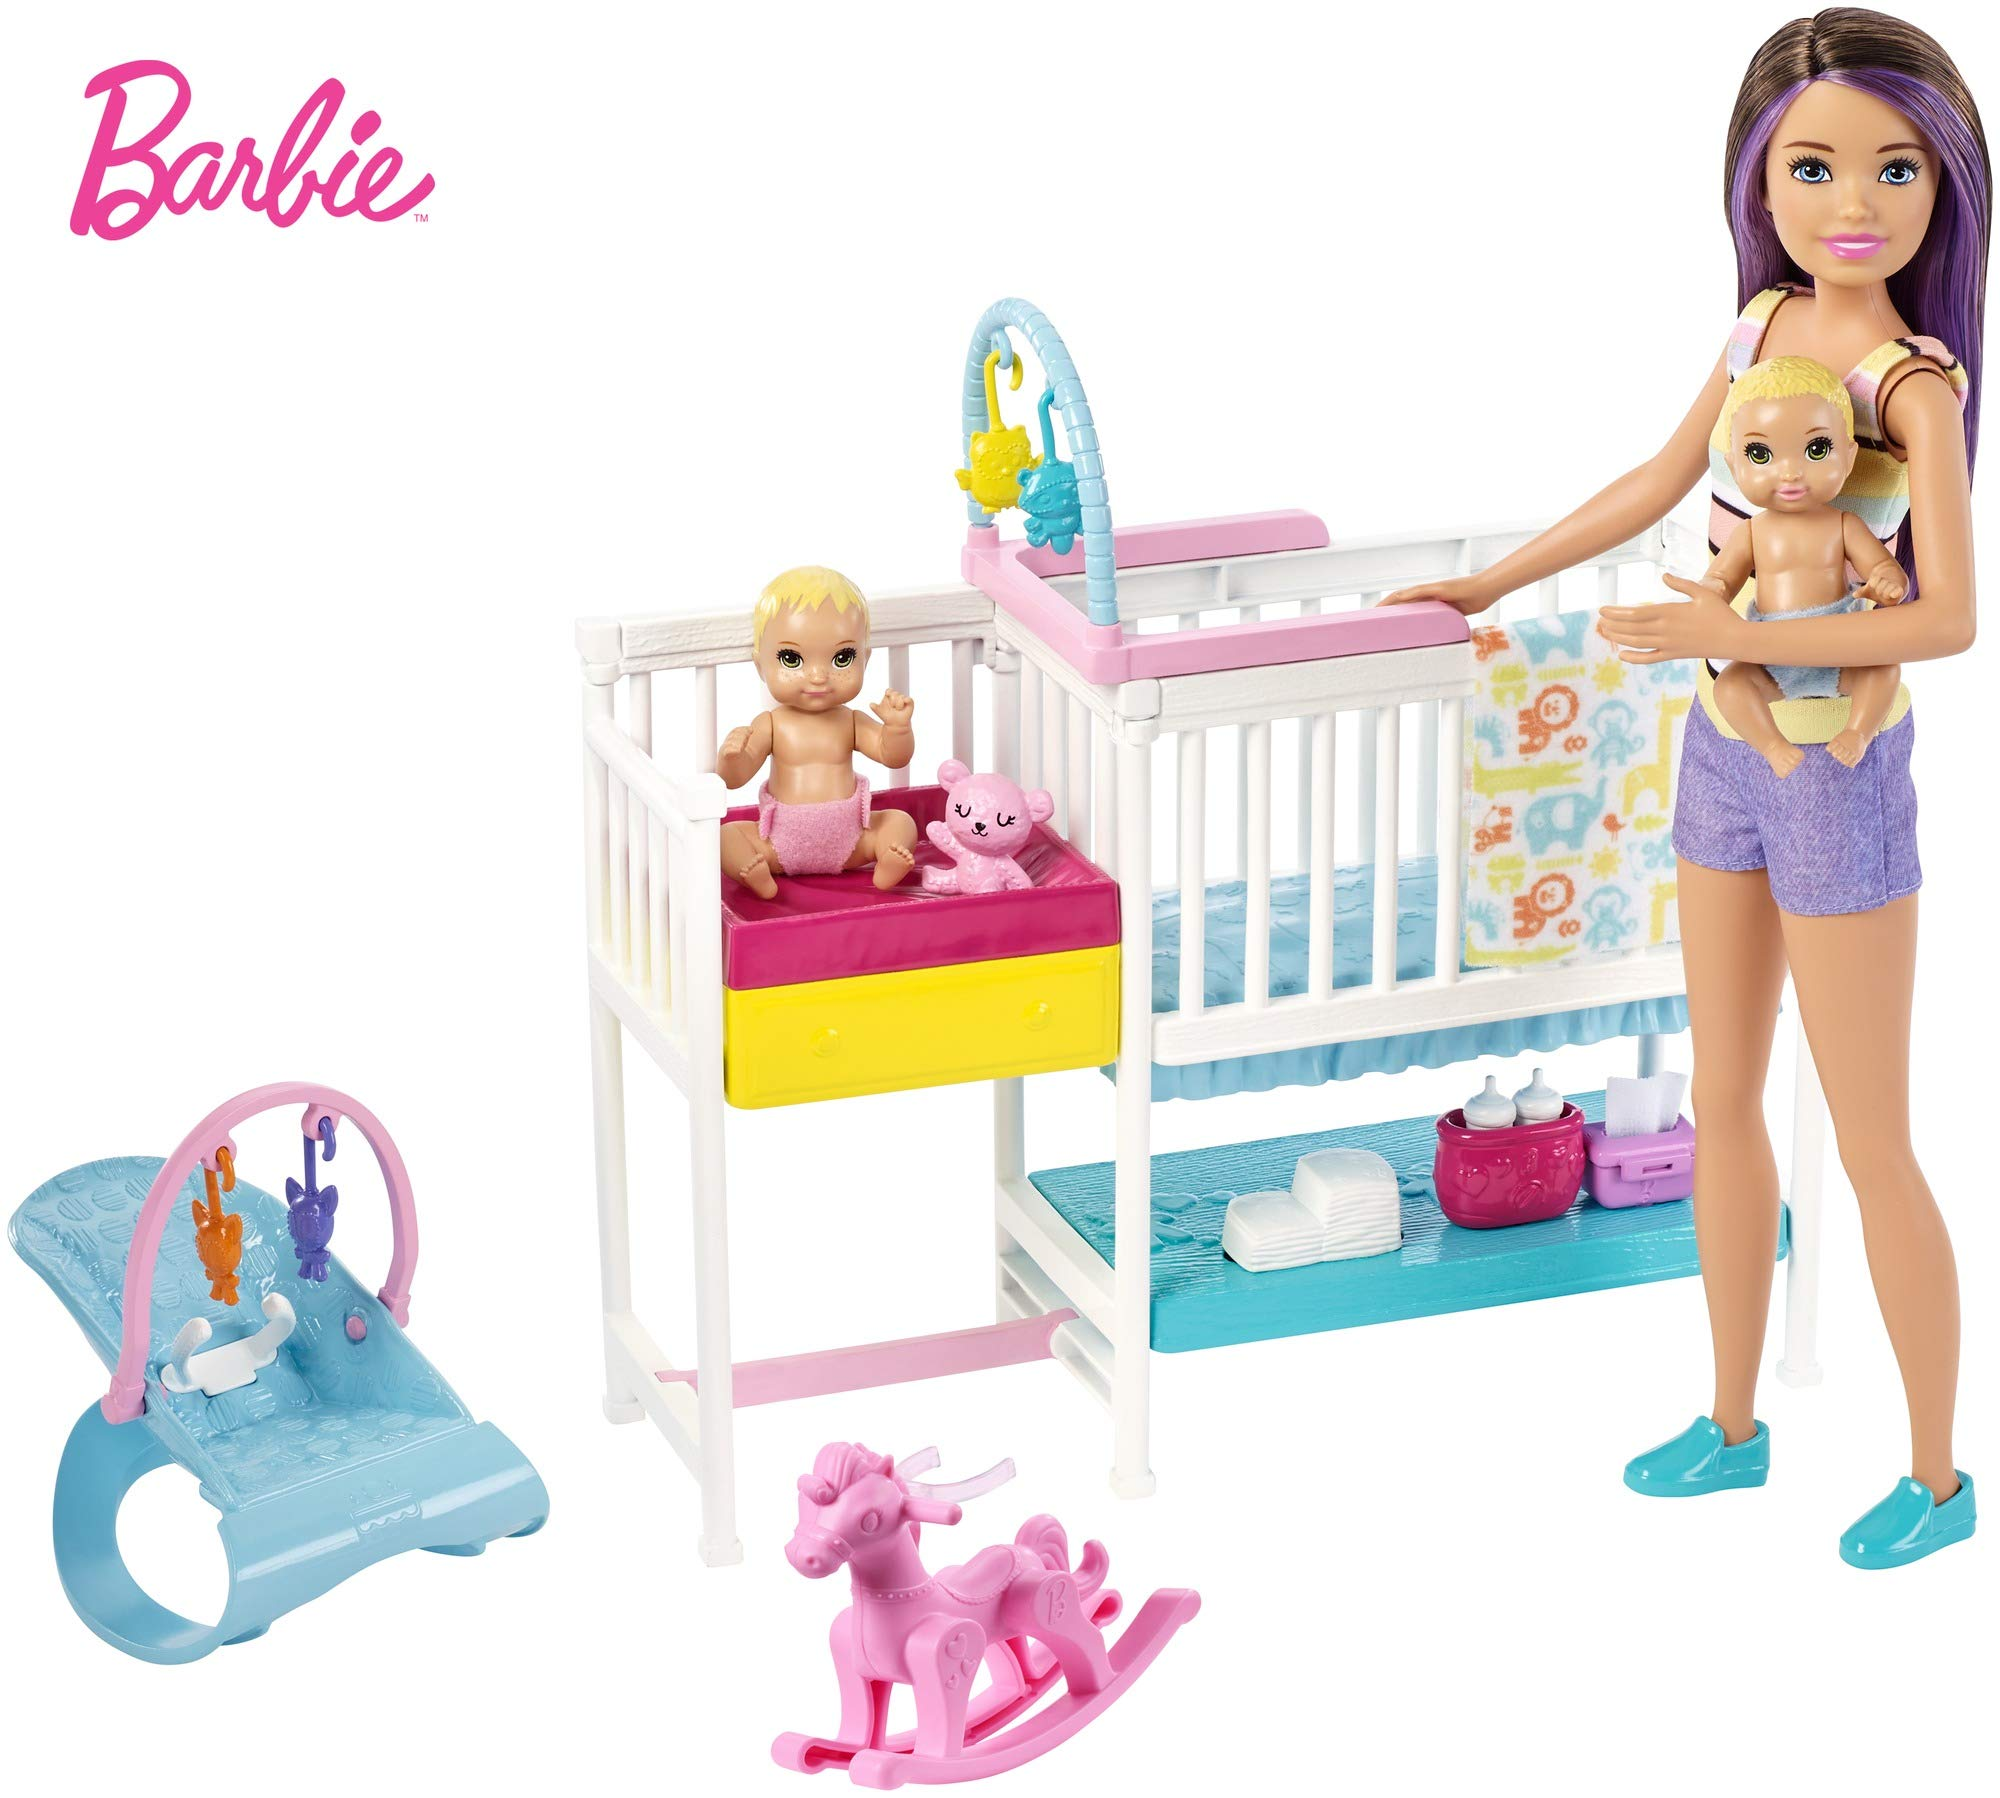 Barbie Skipper Babysitters Inc Nap 'n' Nurture Nursery Dolls and Playset by Barbie